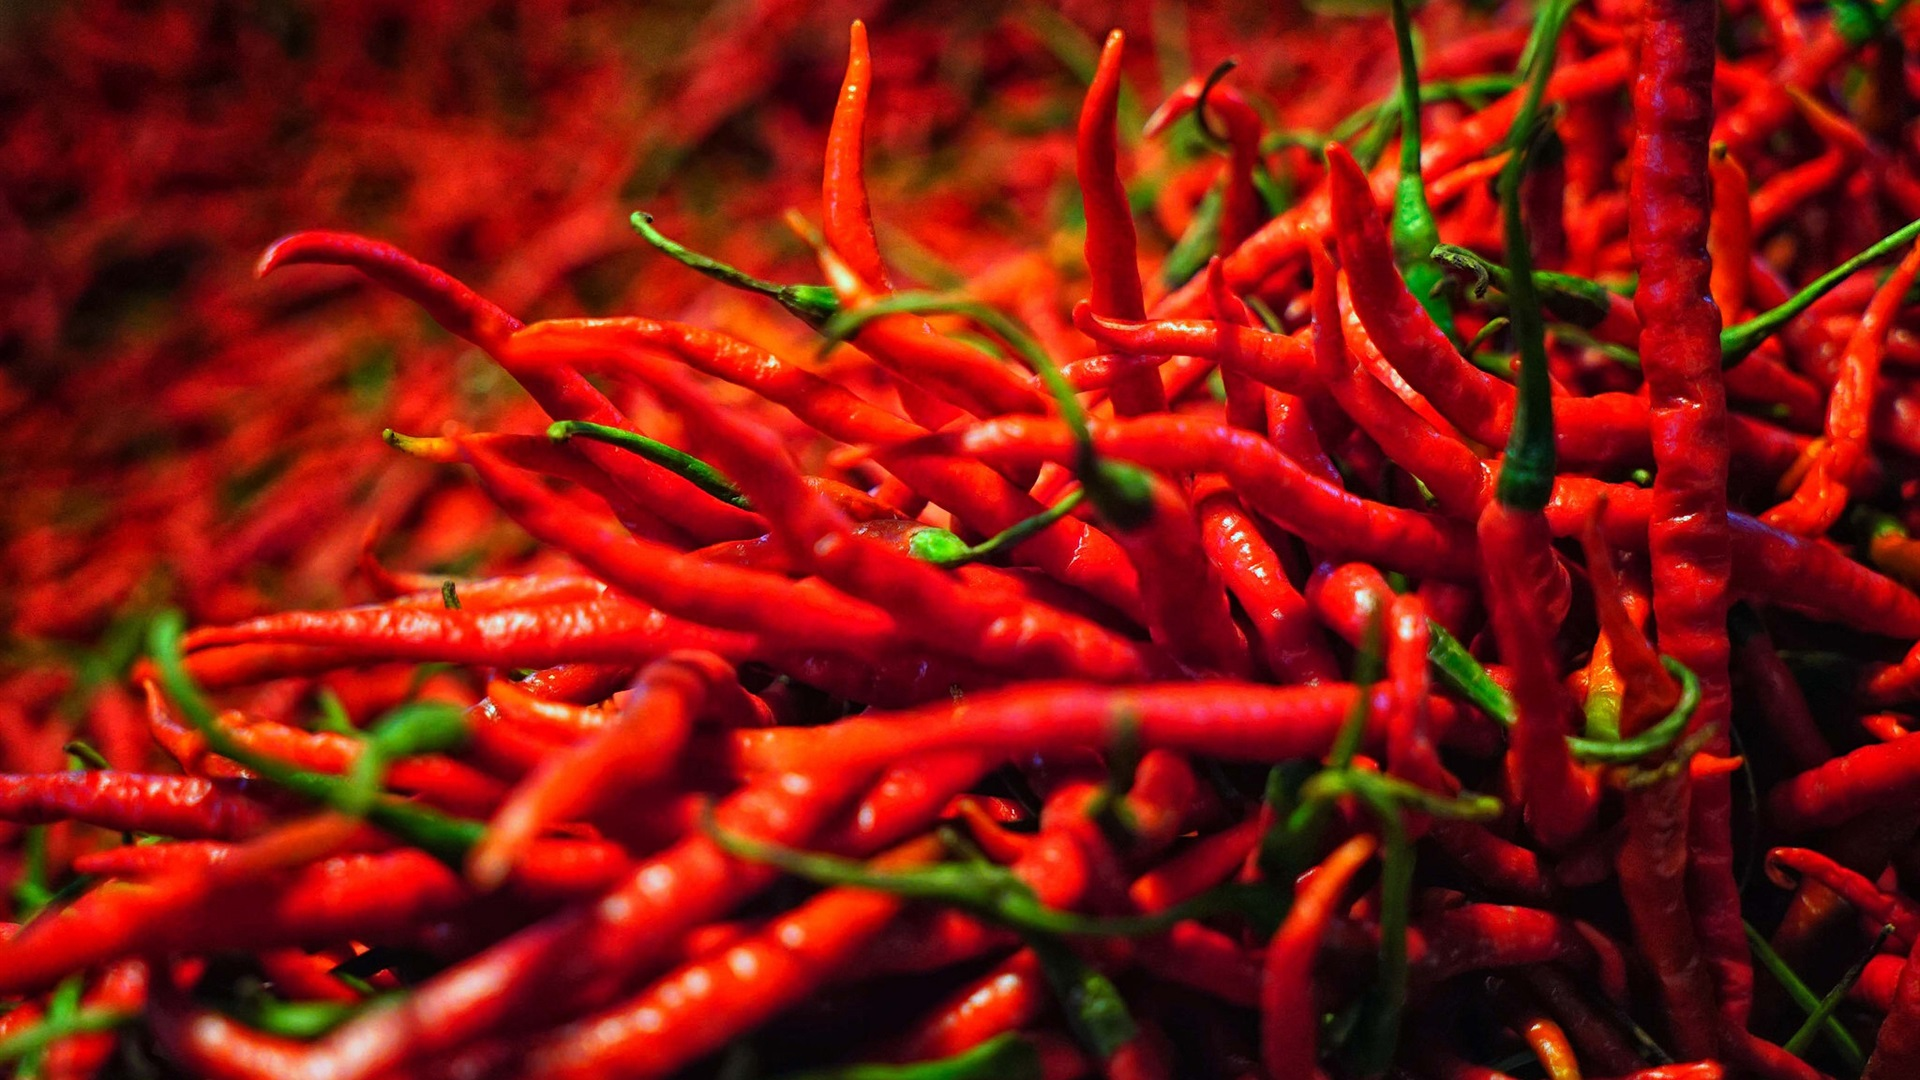 Wallpaper A Lot Of Red Peppers Spicy Vegetables